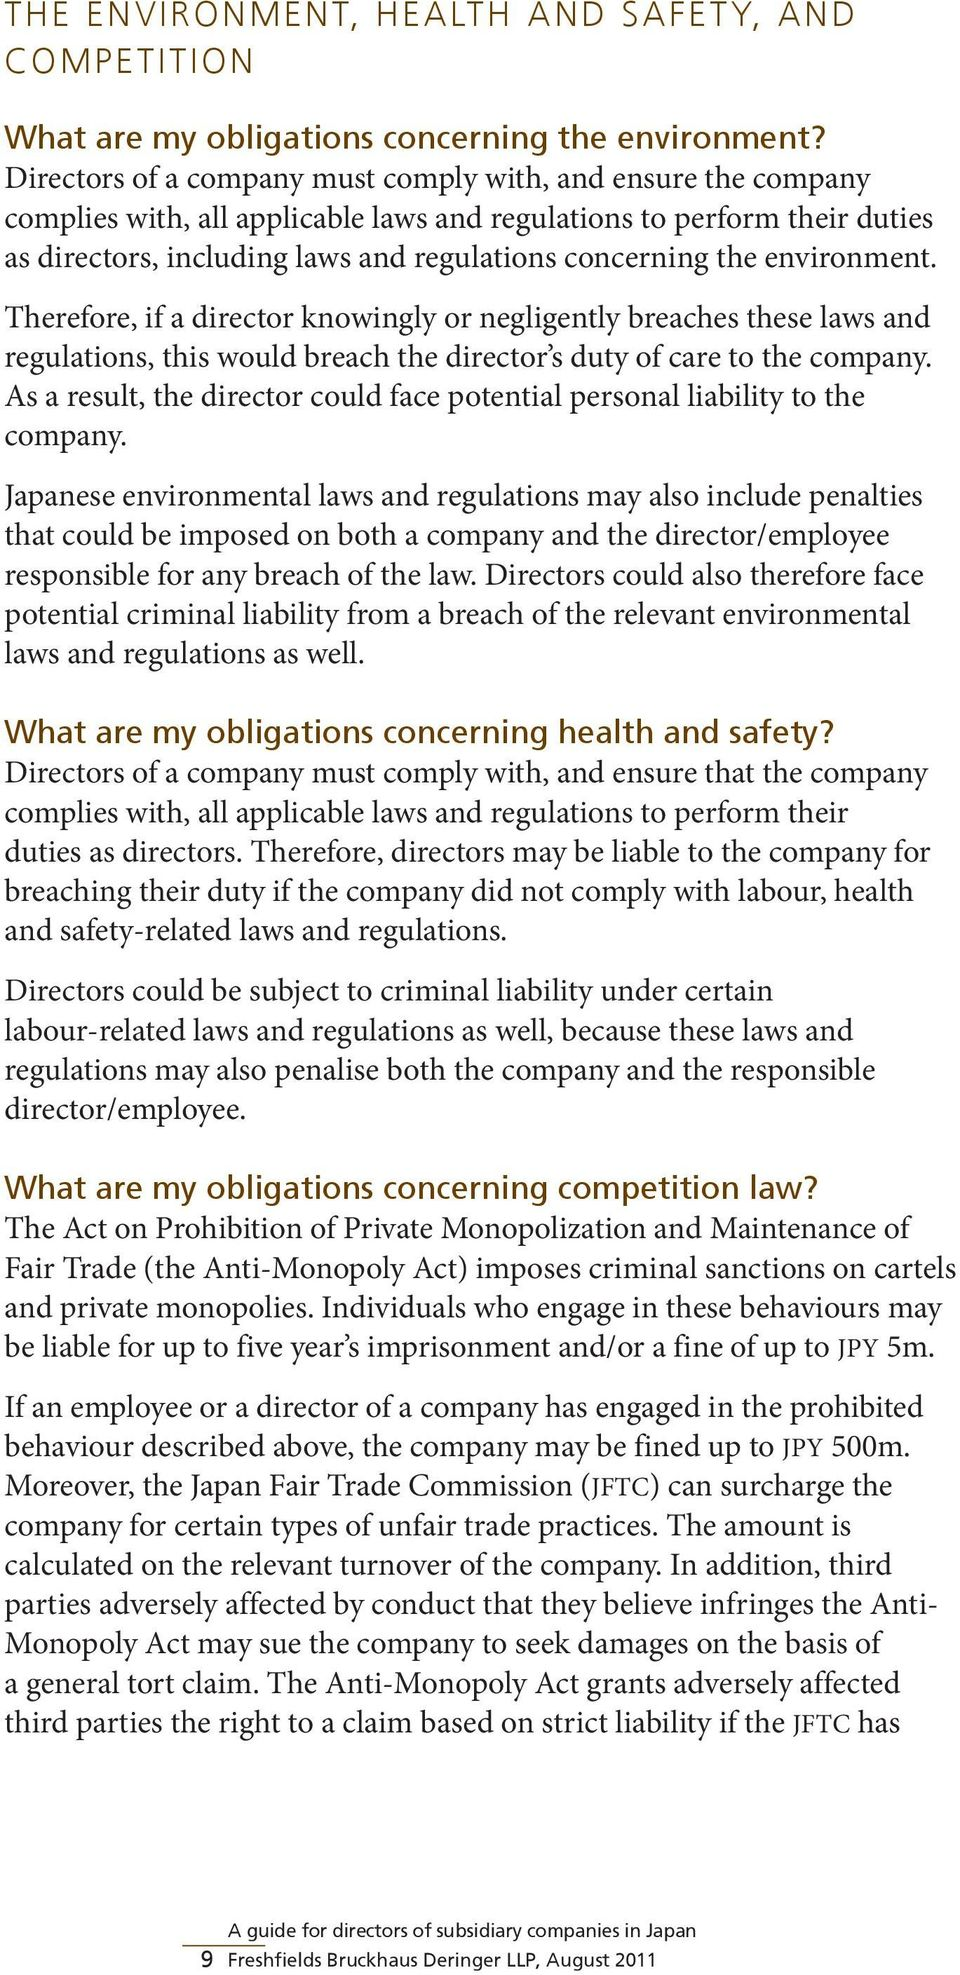 environment. Therefore, if a director knowingly or negligently breaches these laws and regulations, this would breach the director s duty of care to the company.